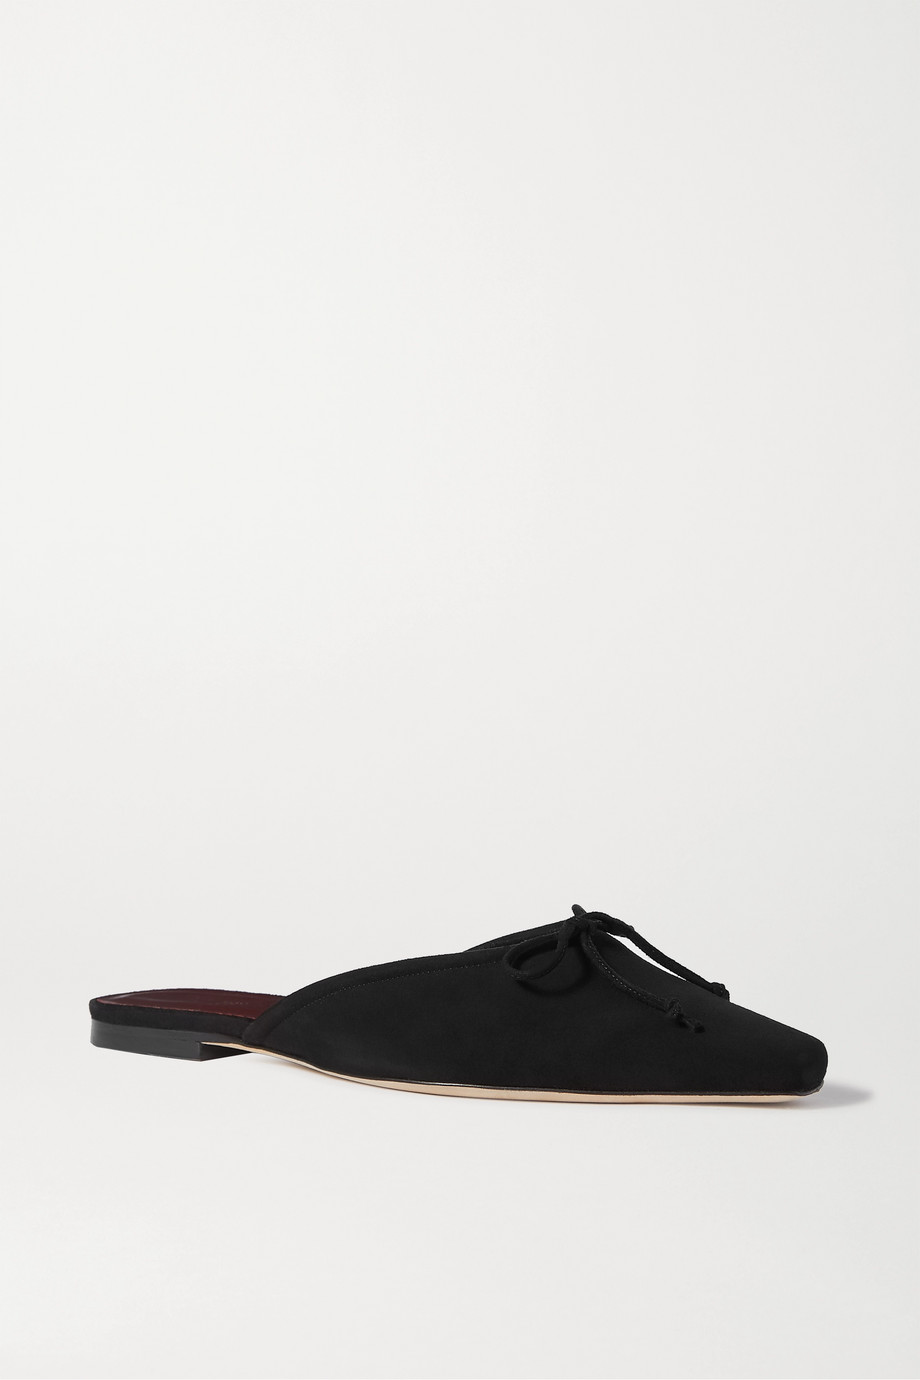 STAUD Gina bow-detailed suede mules